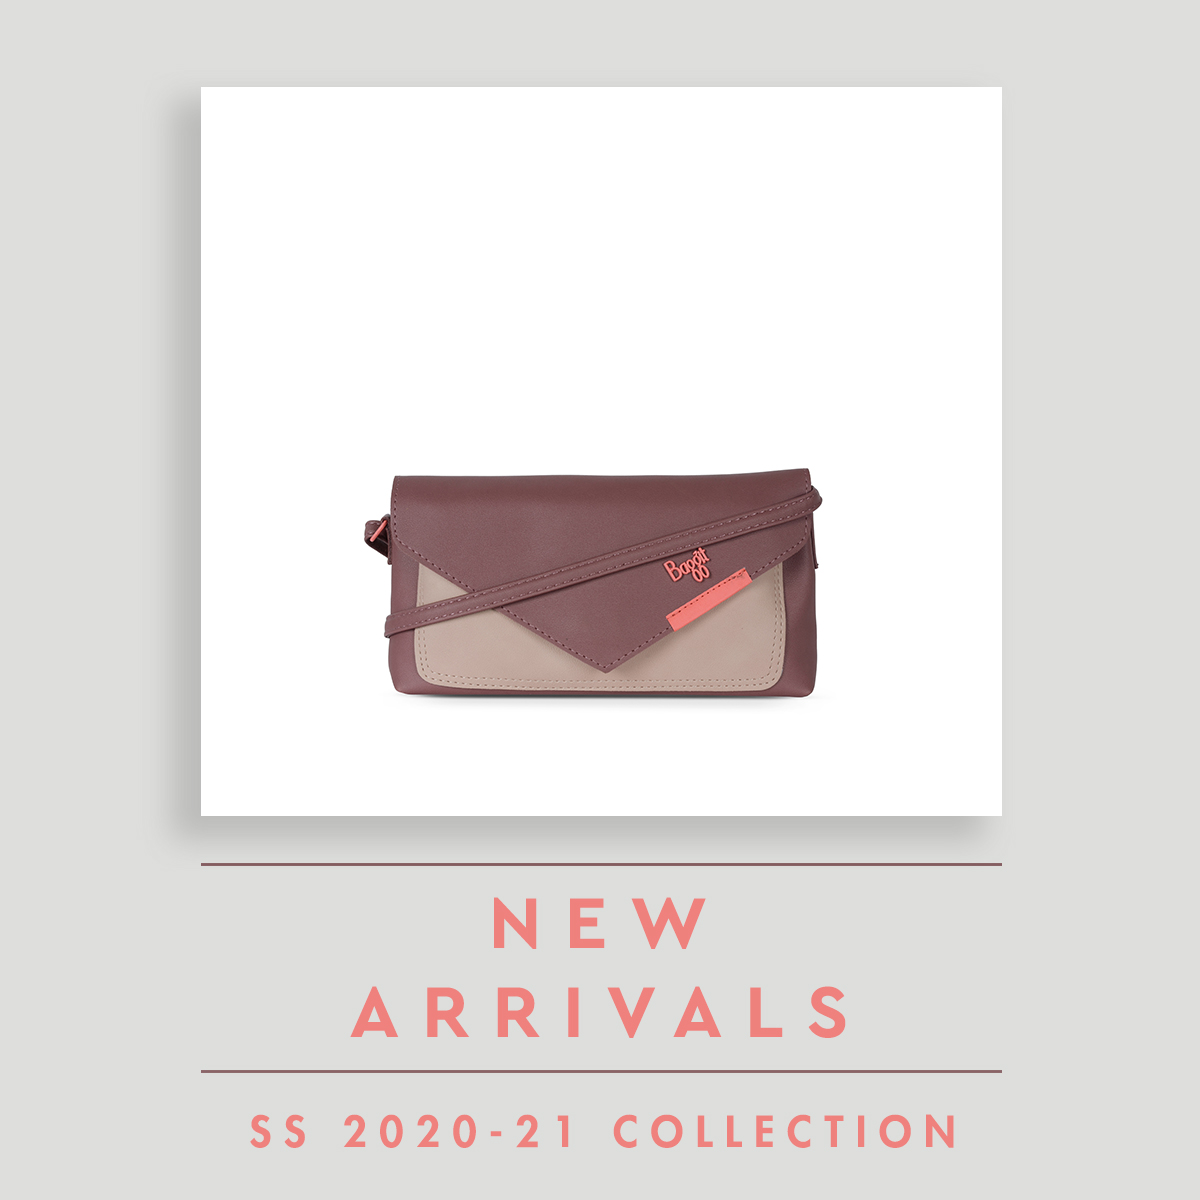 Trending this season wallet-slings featuring envelope-style flap and available in sweet pastel dual colours. #newarrivals #sling #wallet #baggit #madeinindia https://t.co/sIuf6vE7xs